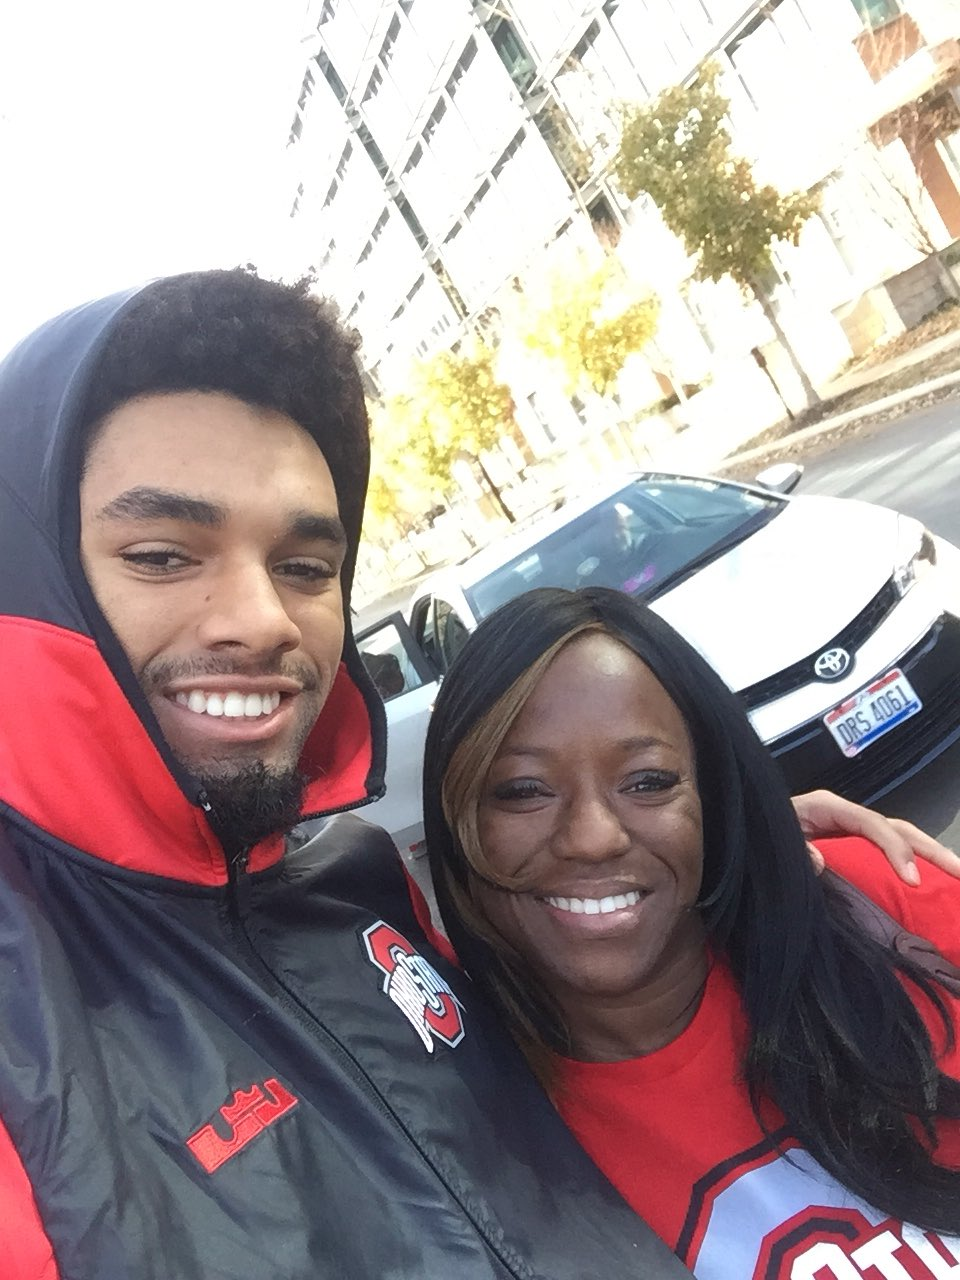 Chris Olave On Twitter Happy Birthday To The Most Unselfish Outgoing Hardest Worker I Know So Much Stuff I Can Say About Her Mom You Re The Reason I Go So Hard I